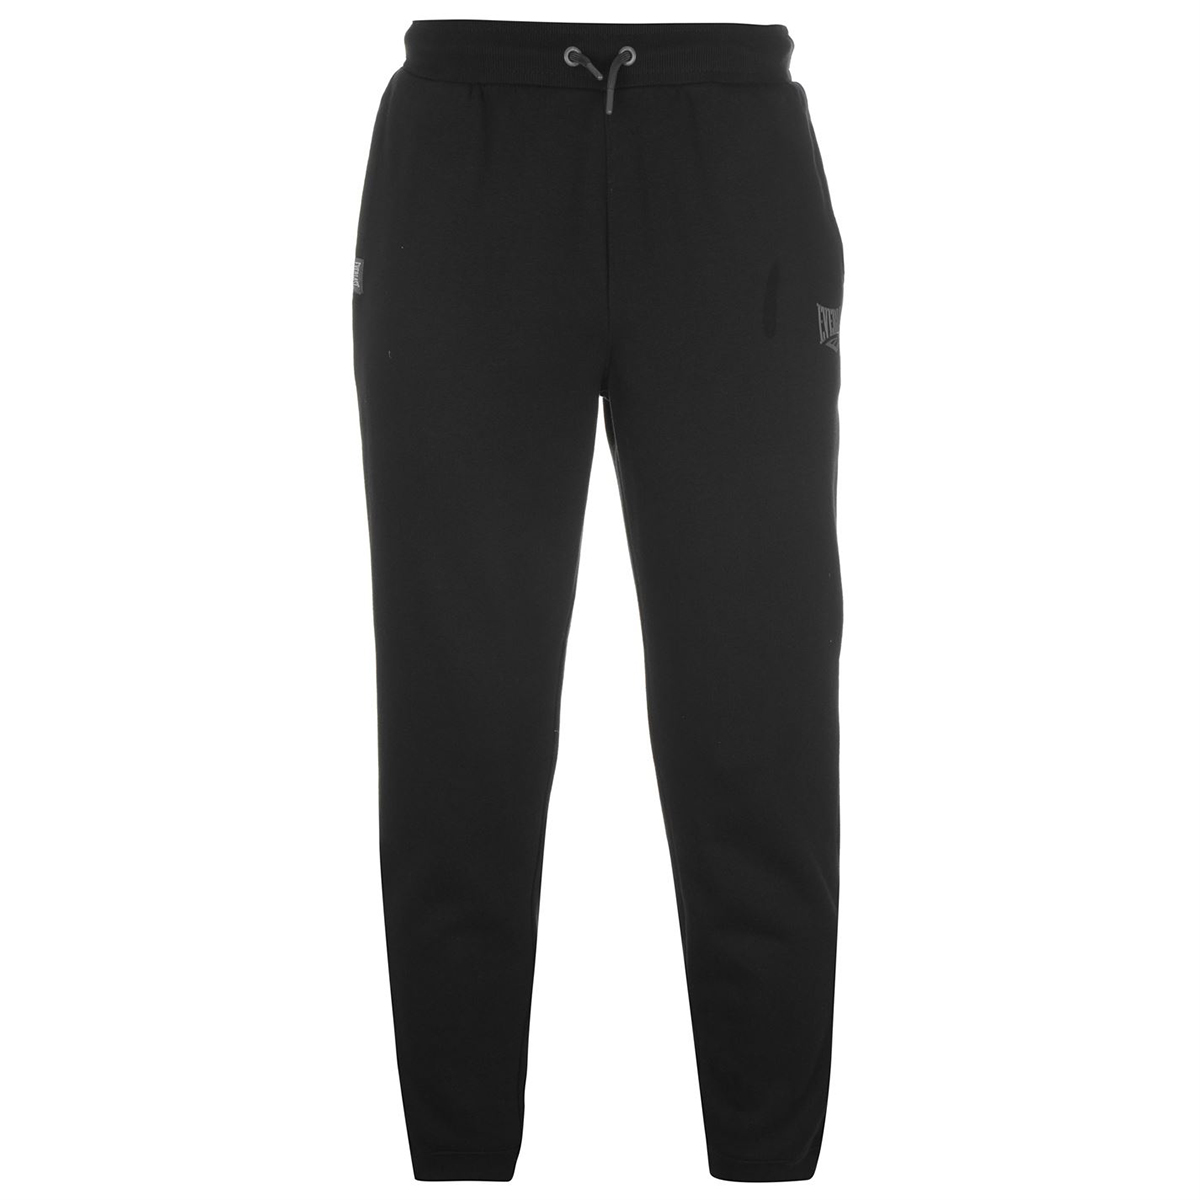 Everlast Men's Jogging Pants - Black, L